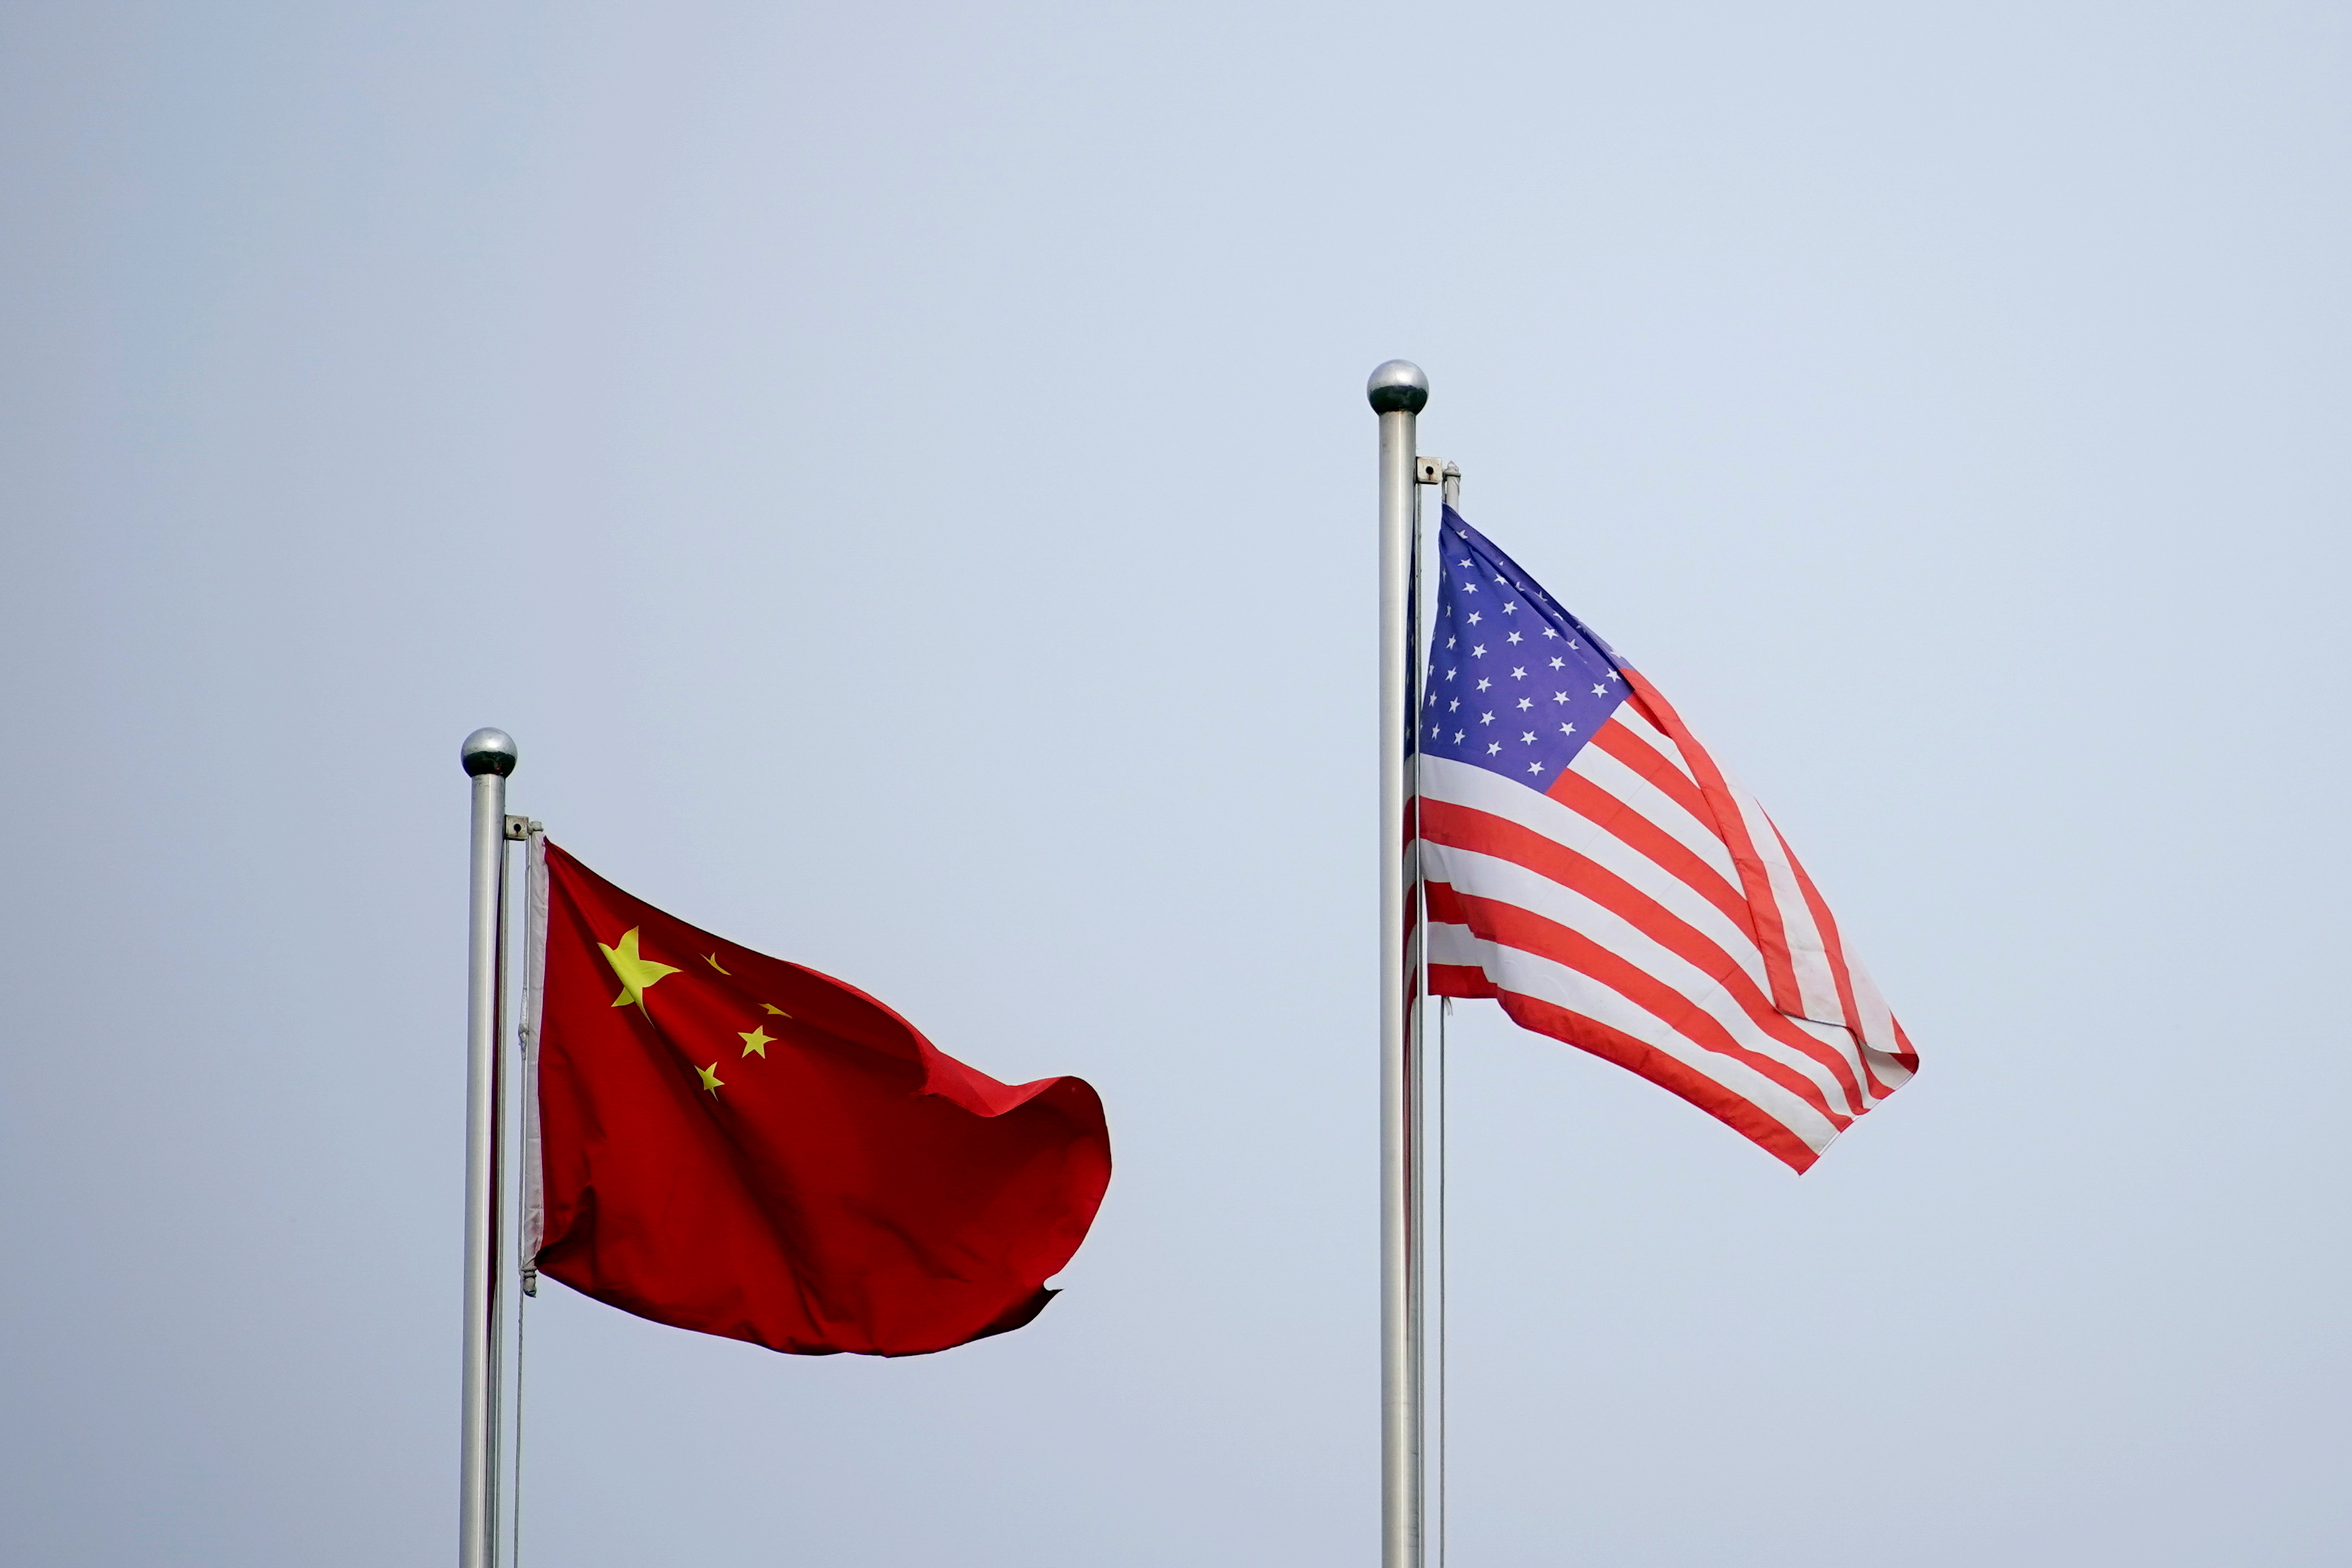 Chinese and U.S. flags flutter outside a company building in Shanghai, China April 14, 2021. REUTERS/Aly Song